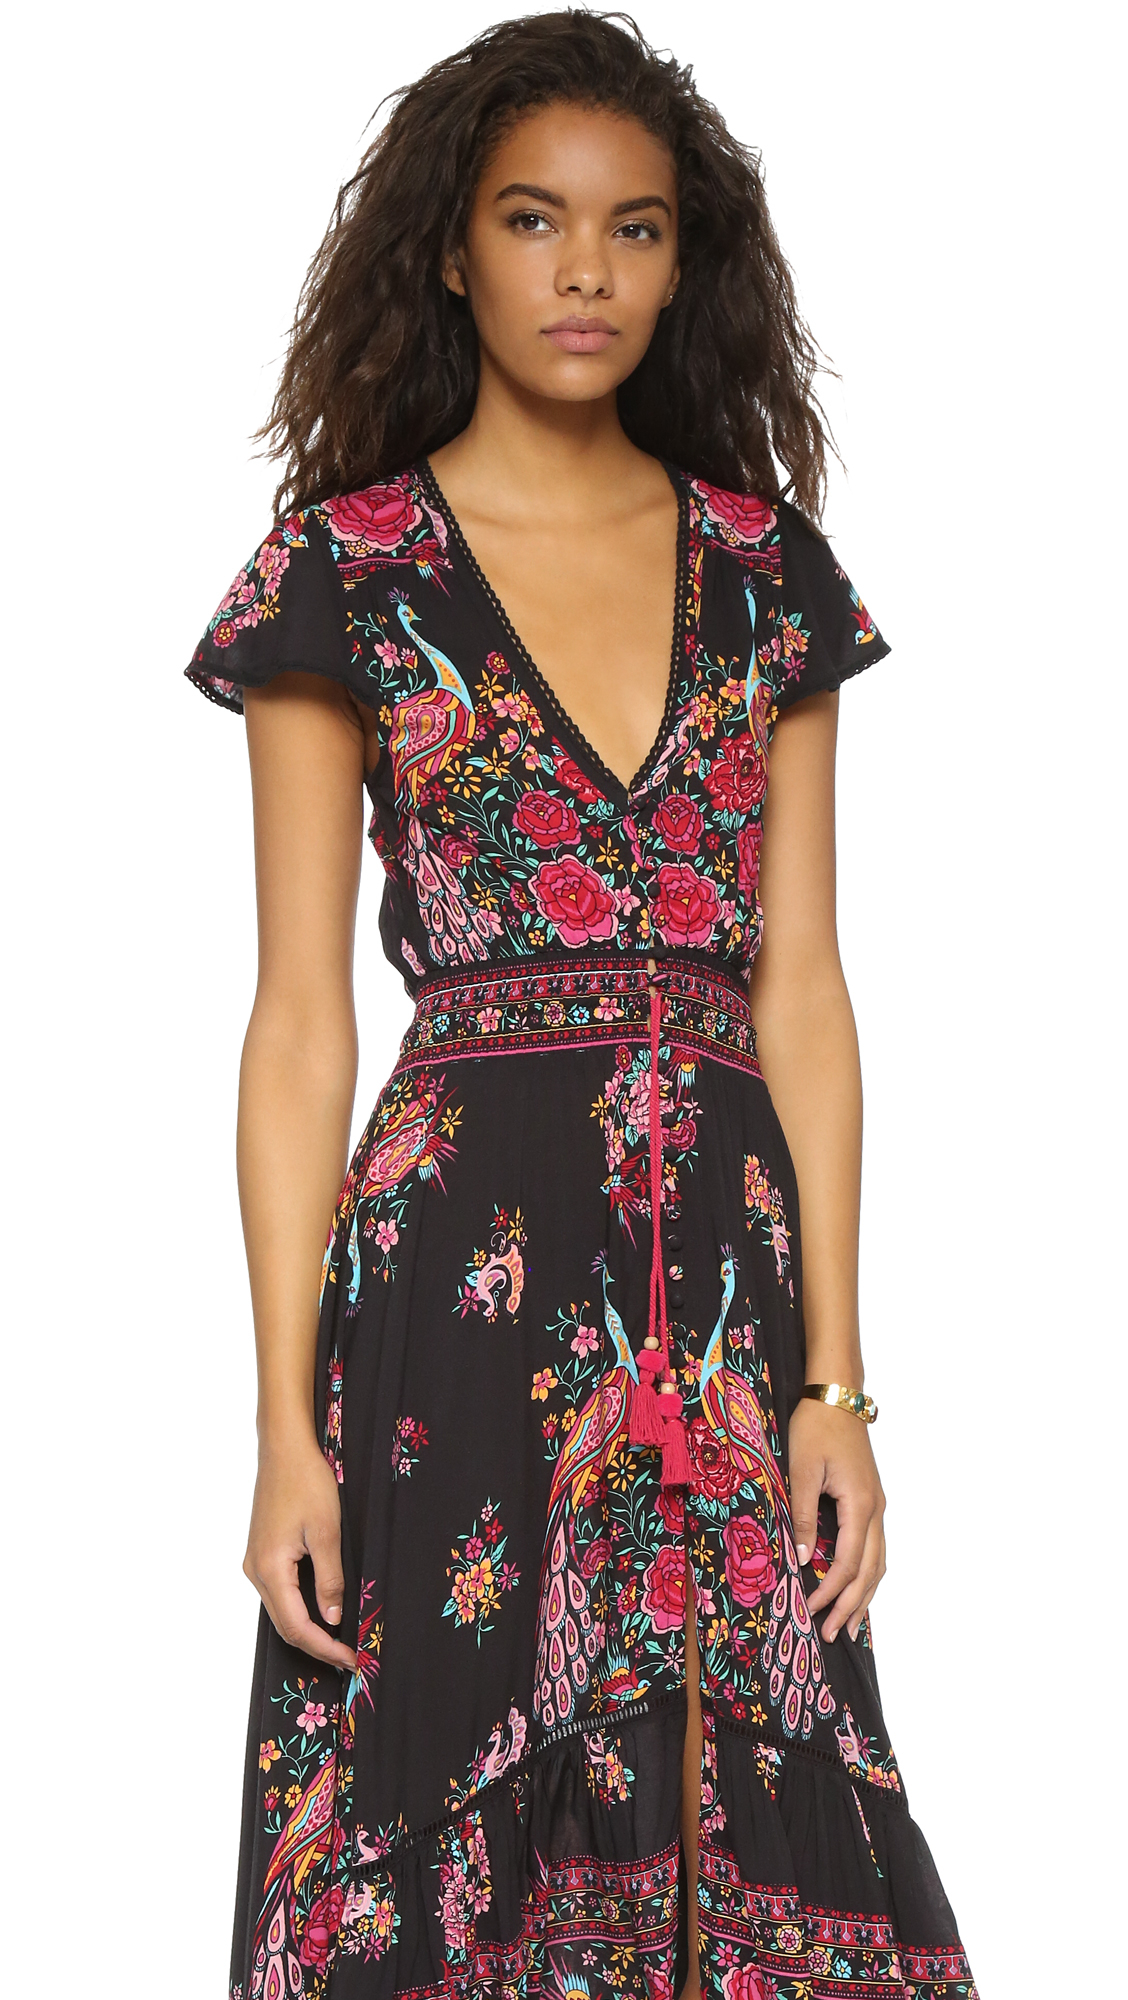 Spell Hotel Paradiso Gown - Jet in Black - Lyst